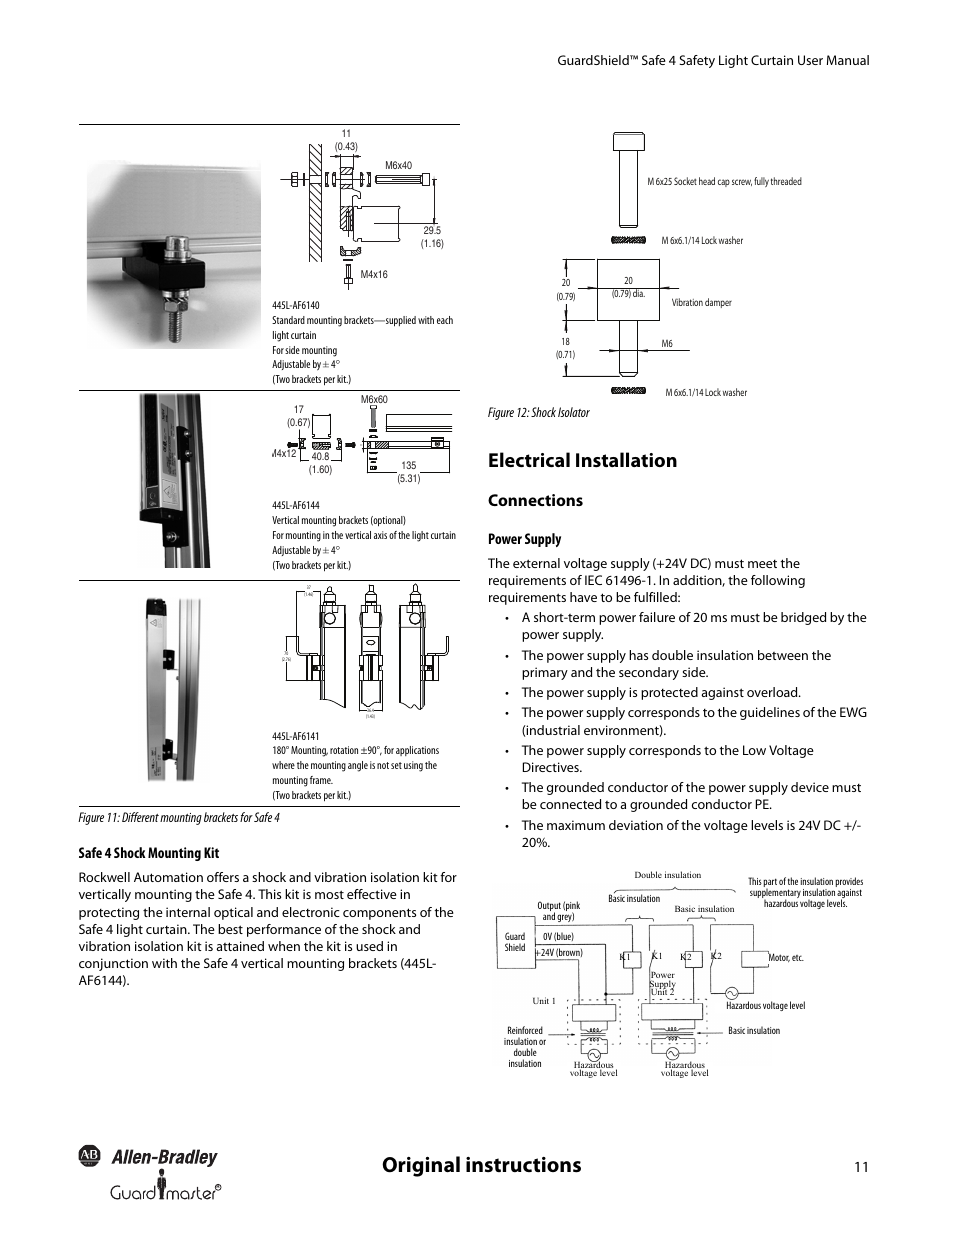 Original instructions, Electrical installation, Connections ...